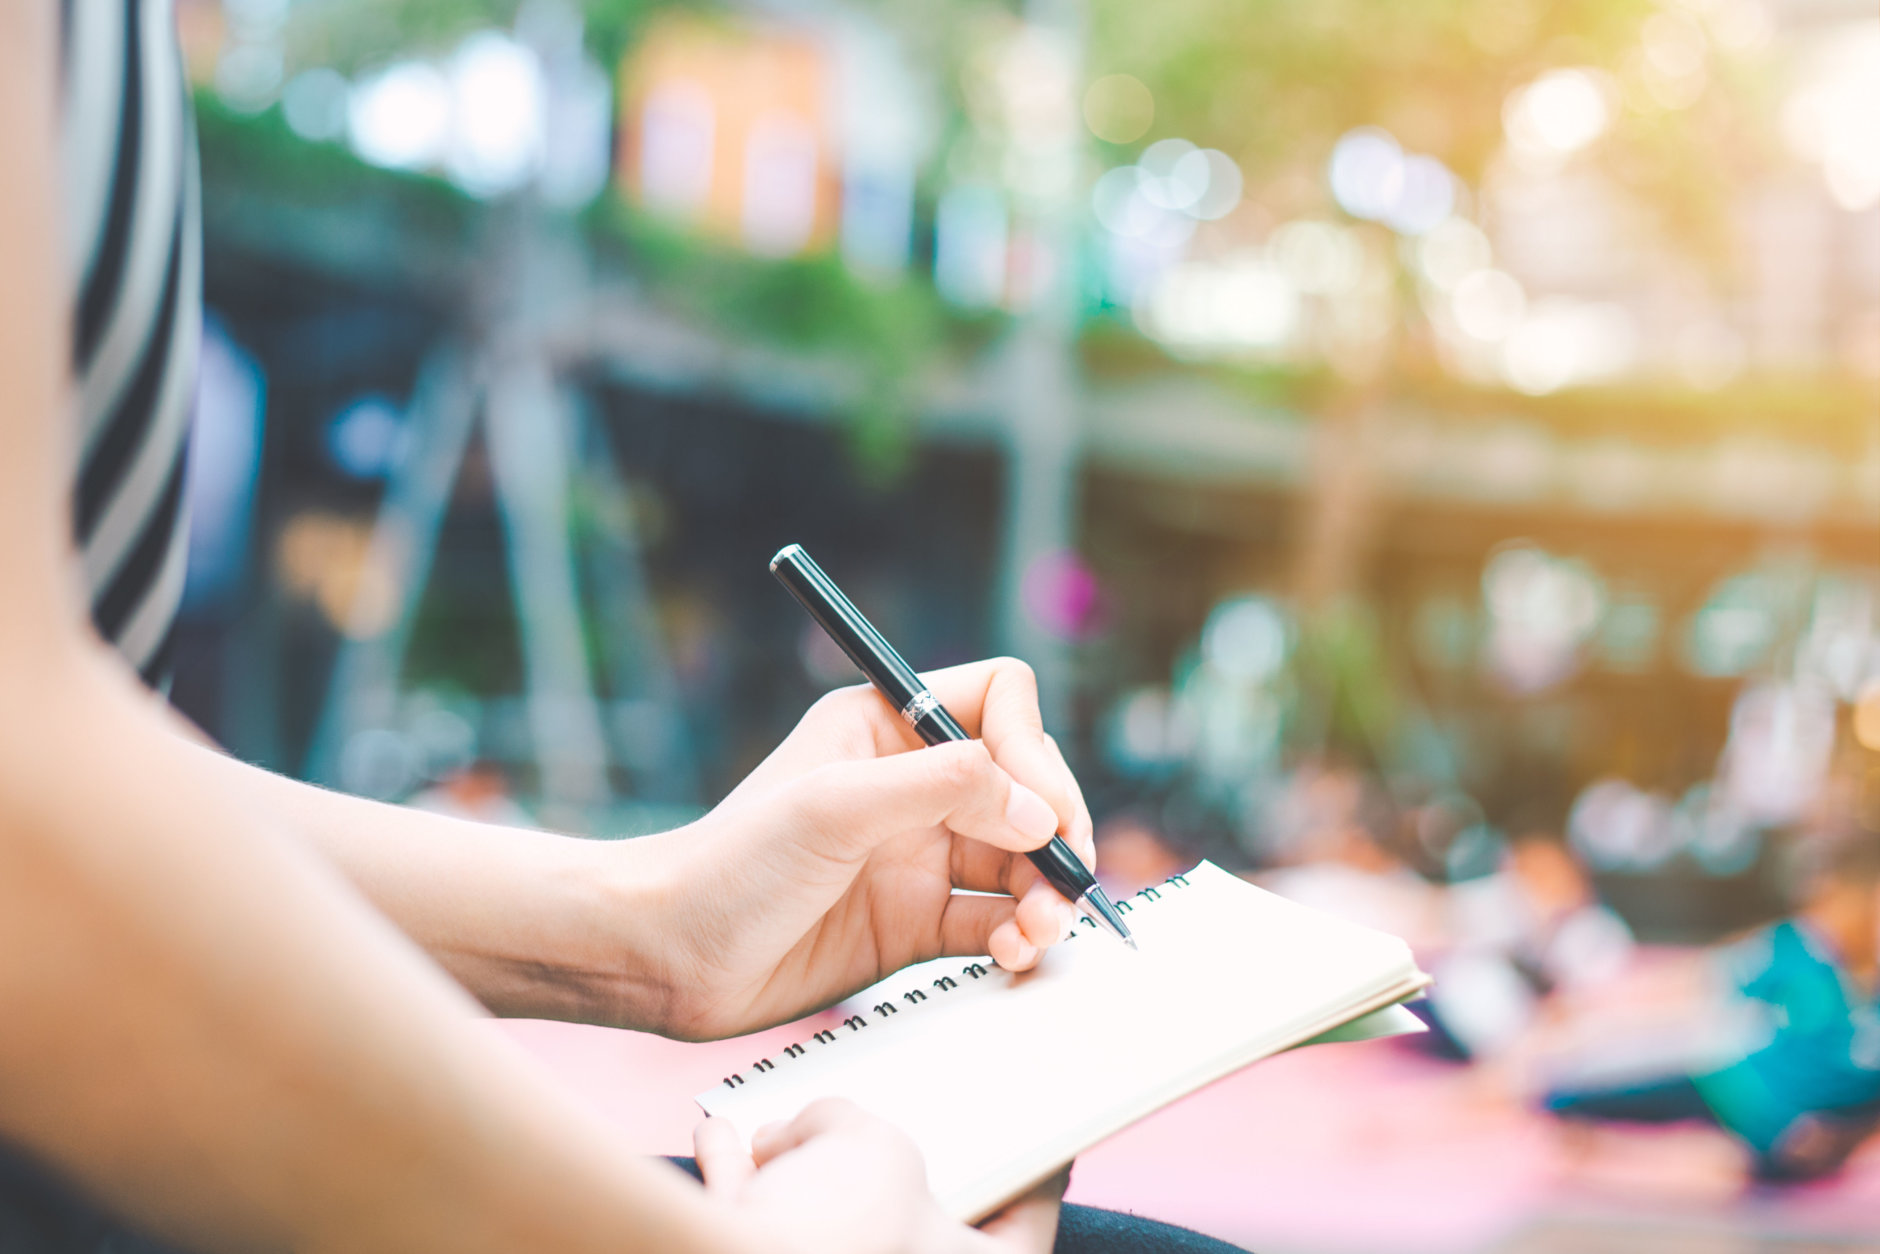 The woman's hand is writing on a blank notepad with a pen.